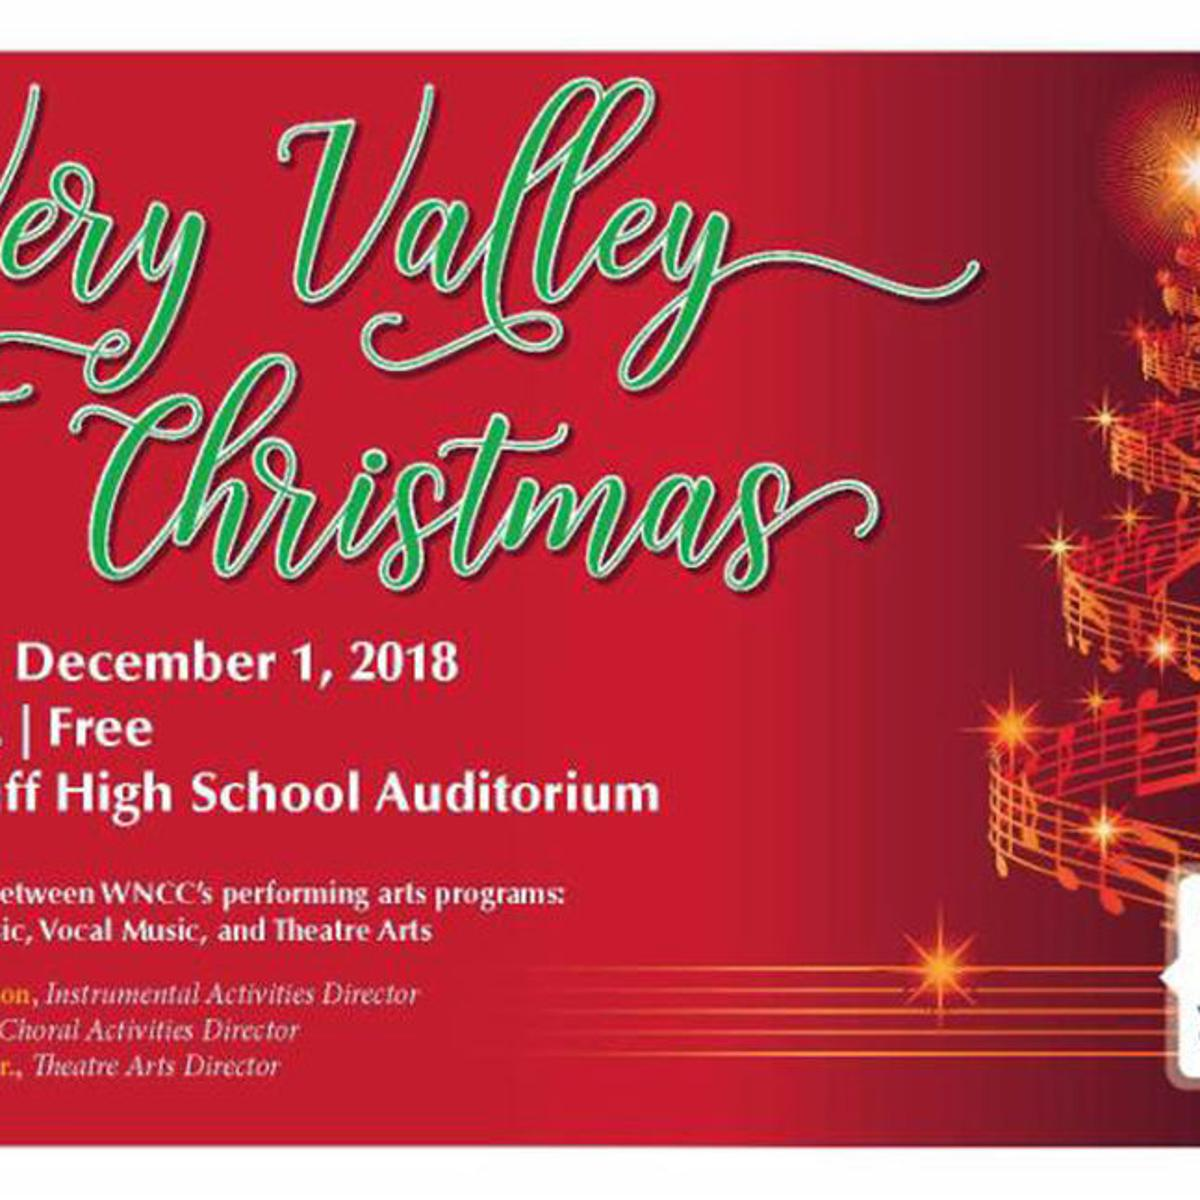 WNCC performing arts showcases holiday tunes with 'A Very Valley